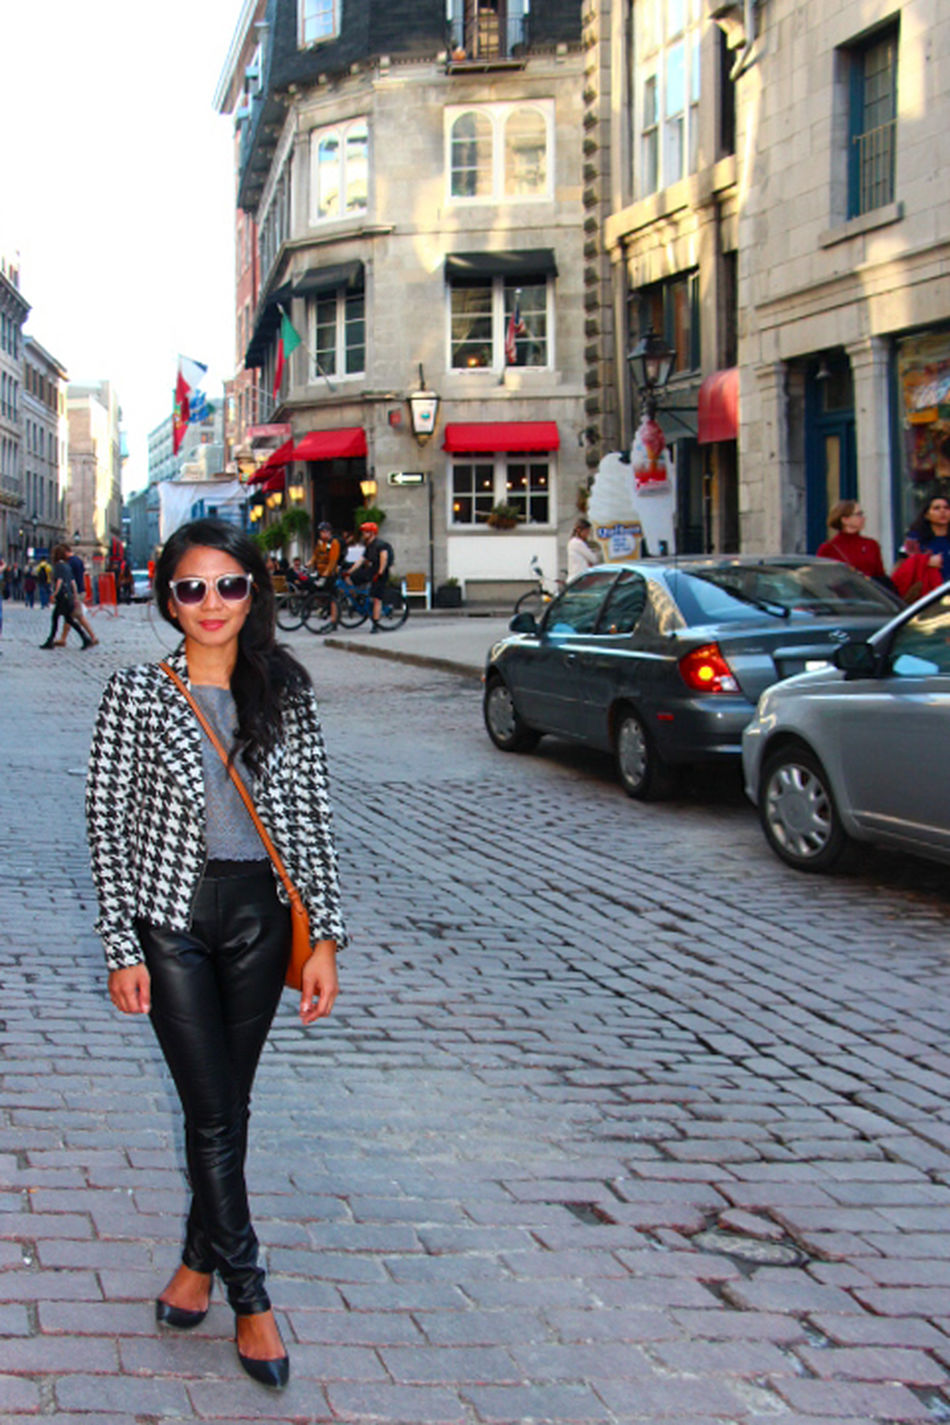 Architecture Built Structure Casual Clothing City City Life City Street Day Faux Leather Full Length Jacket Land Vehicle Leisure Activity Lifestyles Mode Of Transport Montreal, Canada Ootd Outdoors Portrait Road Street Sunglasses Warm Clothing Myself Me Women Around The World